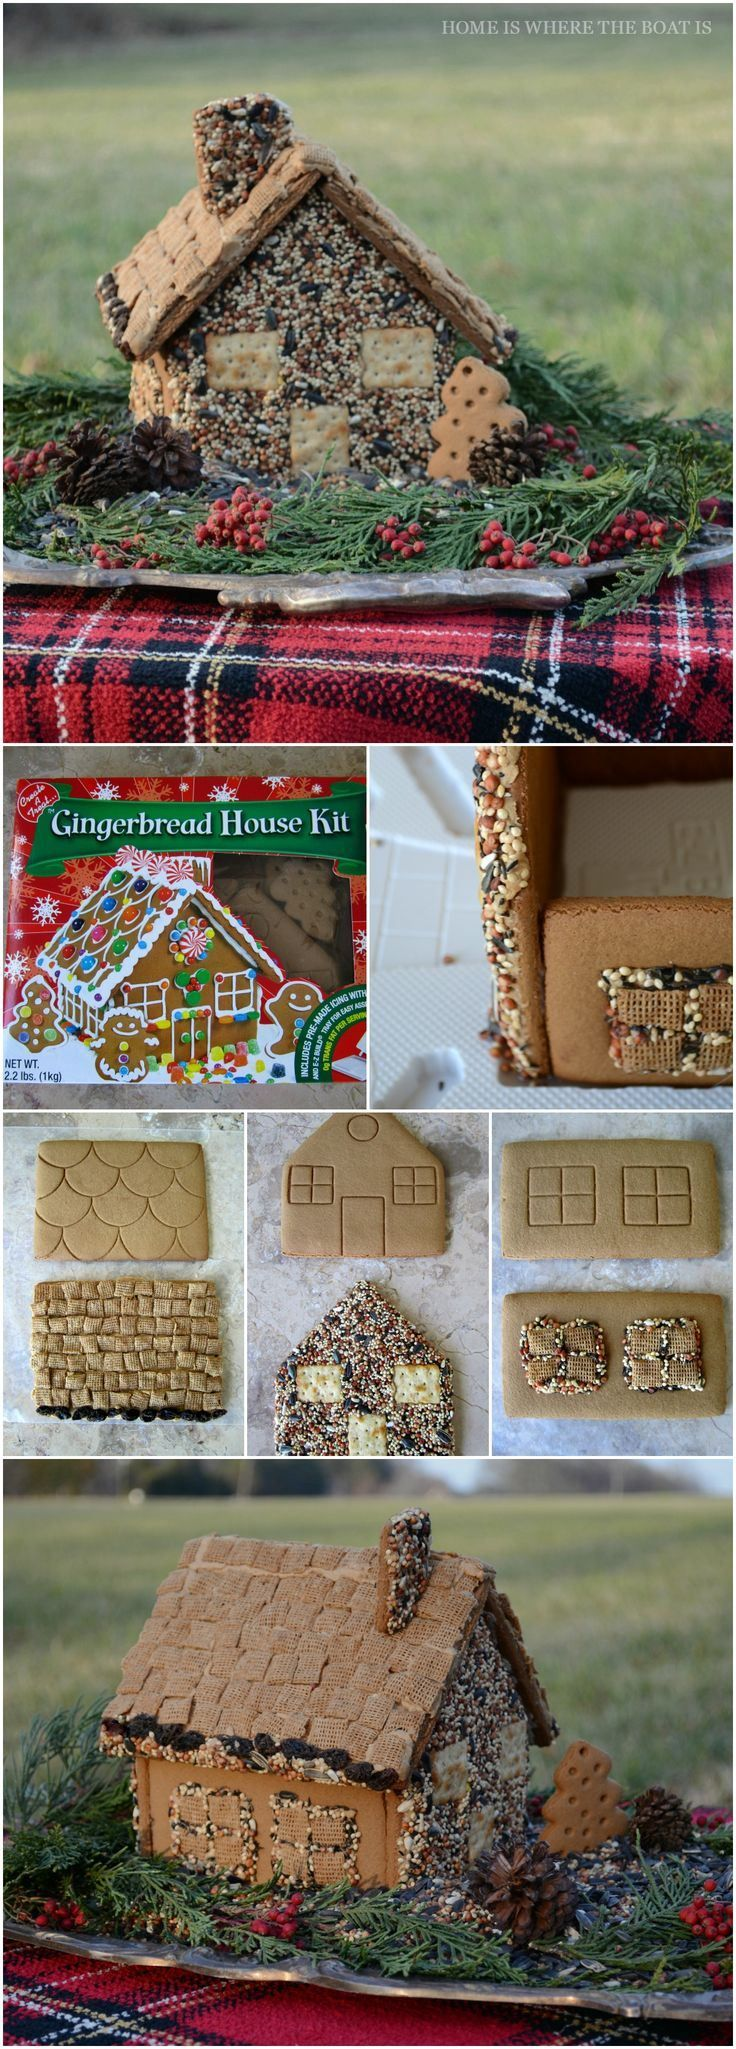 Gingerbread Bird House Feeder. Make an edible house for the birds with a gingerbread house kit from the grocery store.This would be a fun project for the kids and the birds to enjoy in January when those kits go on sale after Christmas!